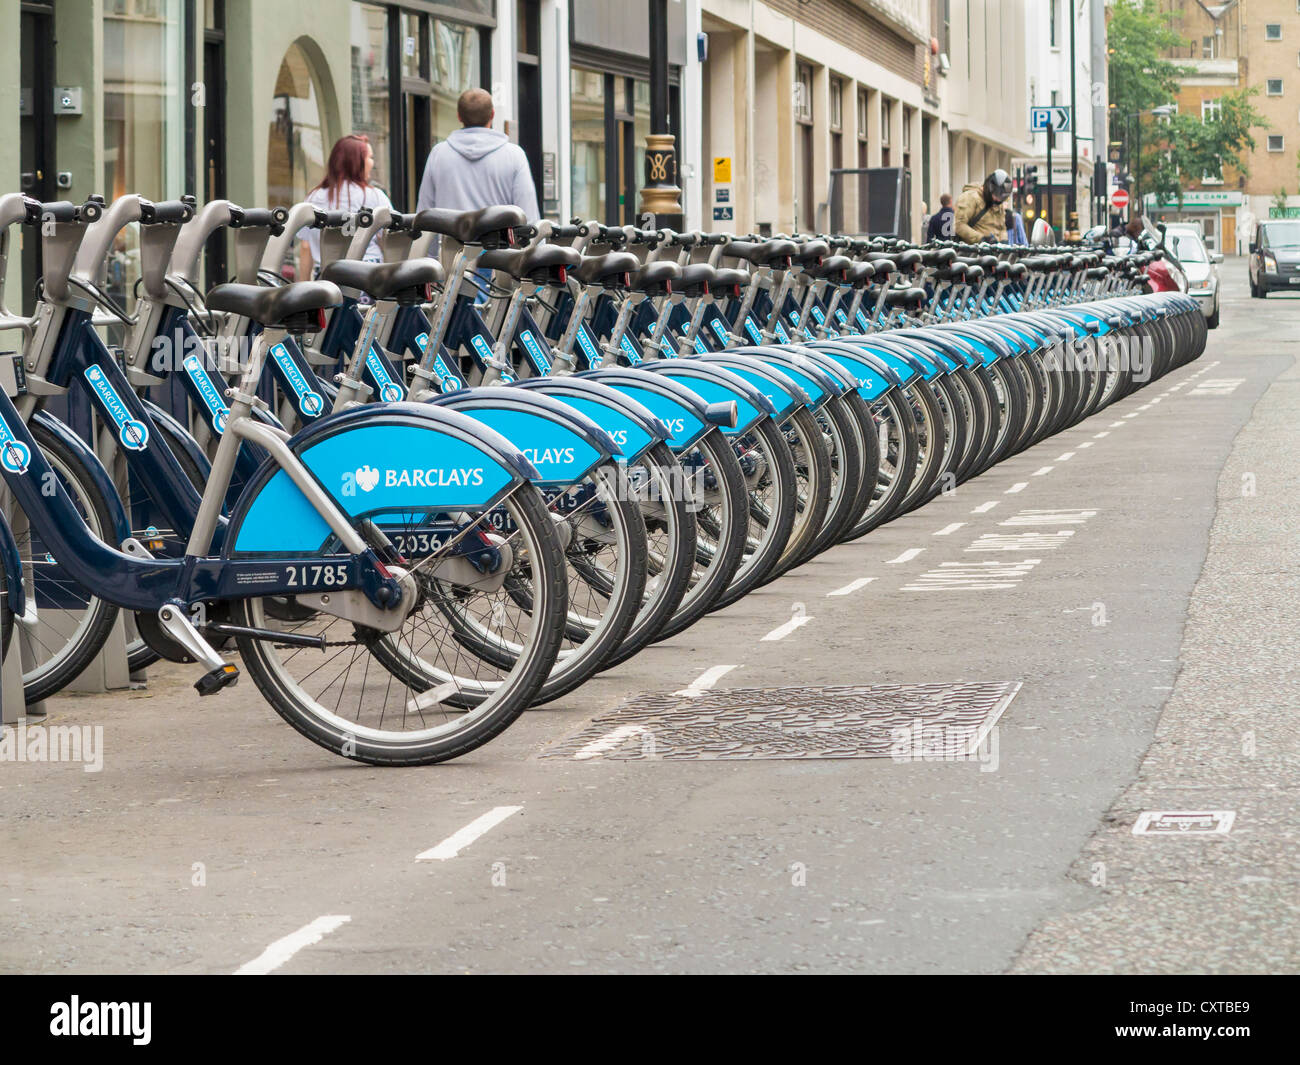 Boris bikes, cycles for hire, London, England - Stock Image